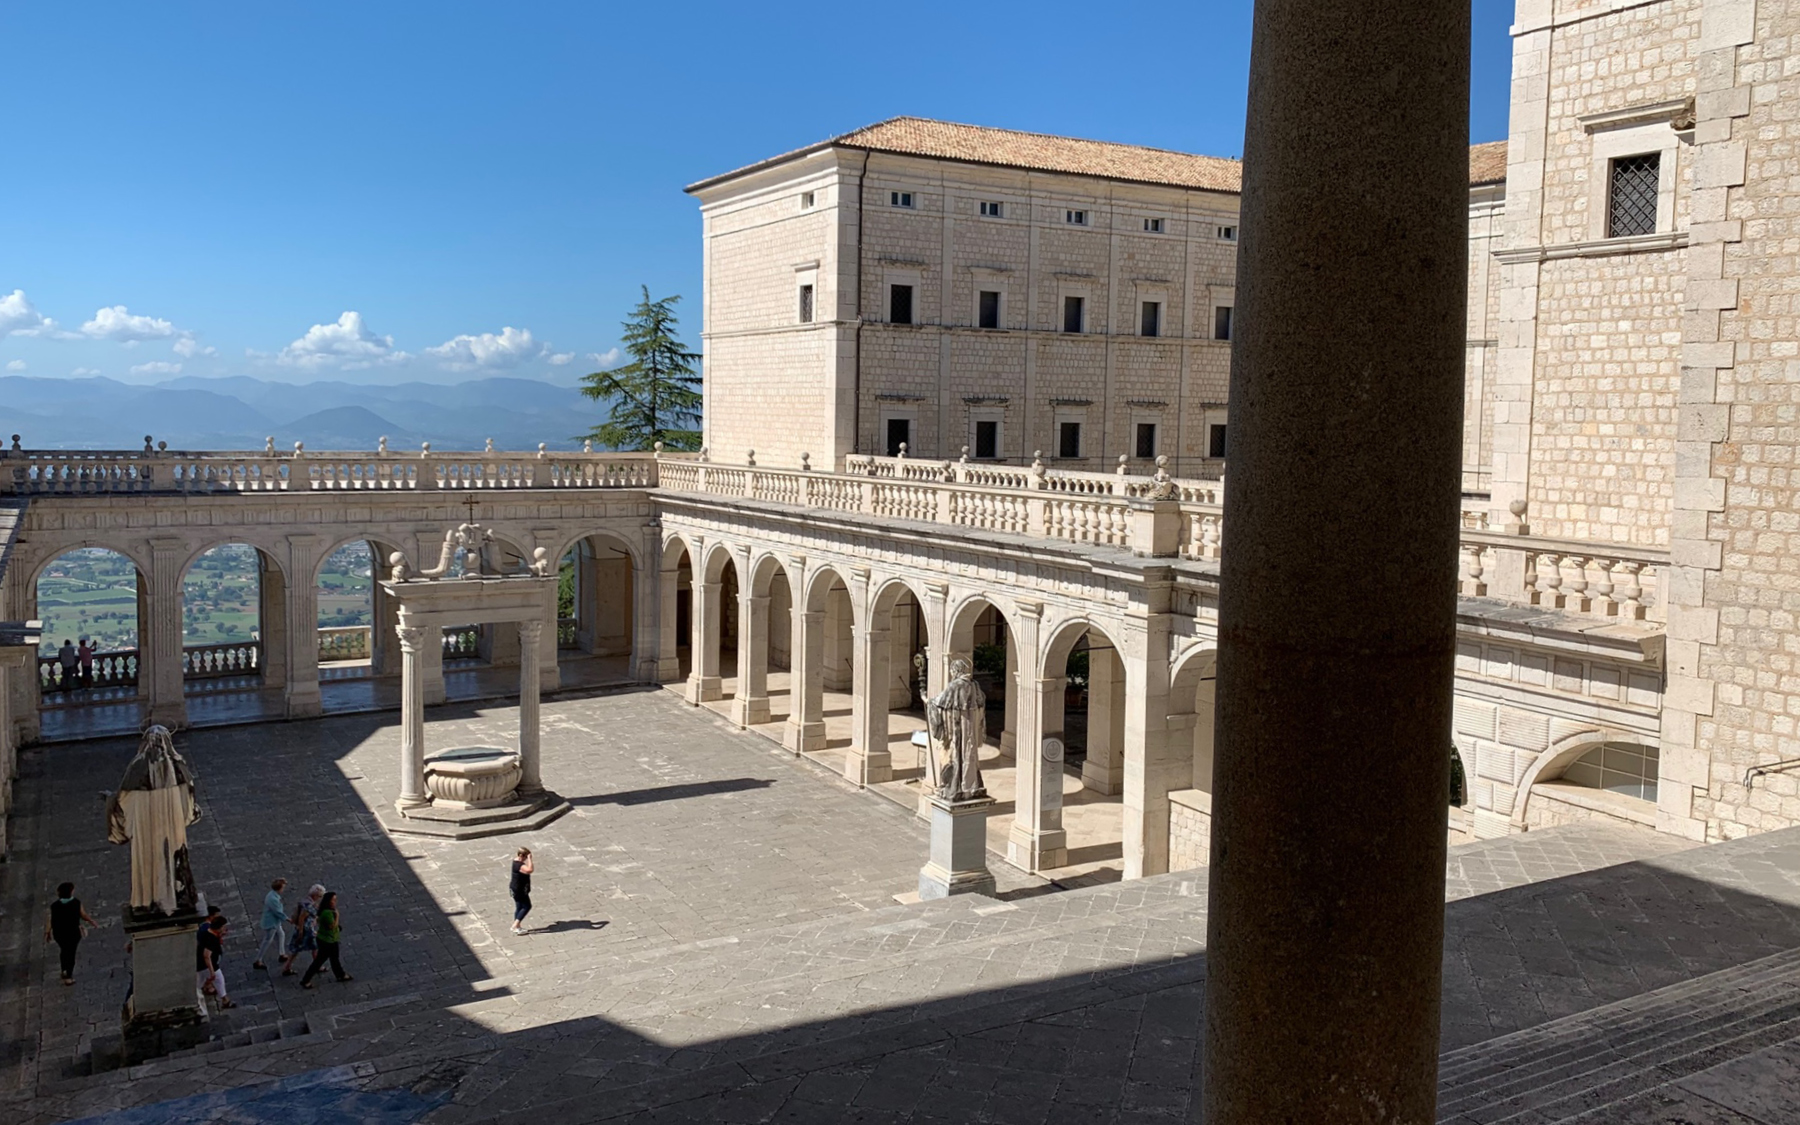 The courtyard of Monte Cassino abbey.